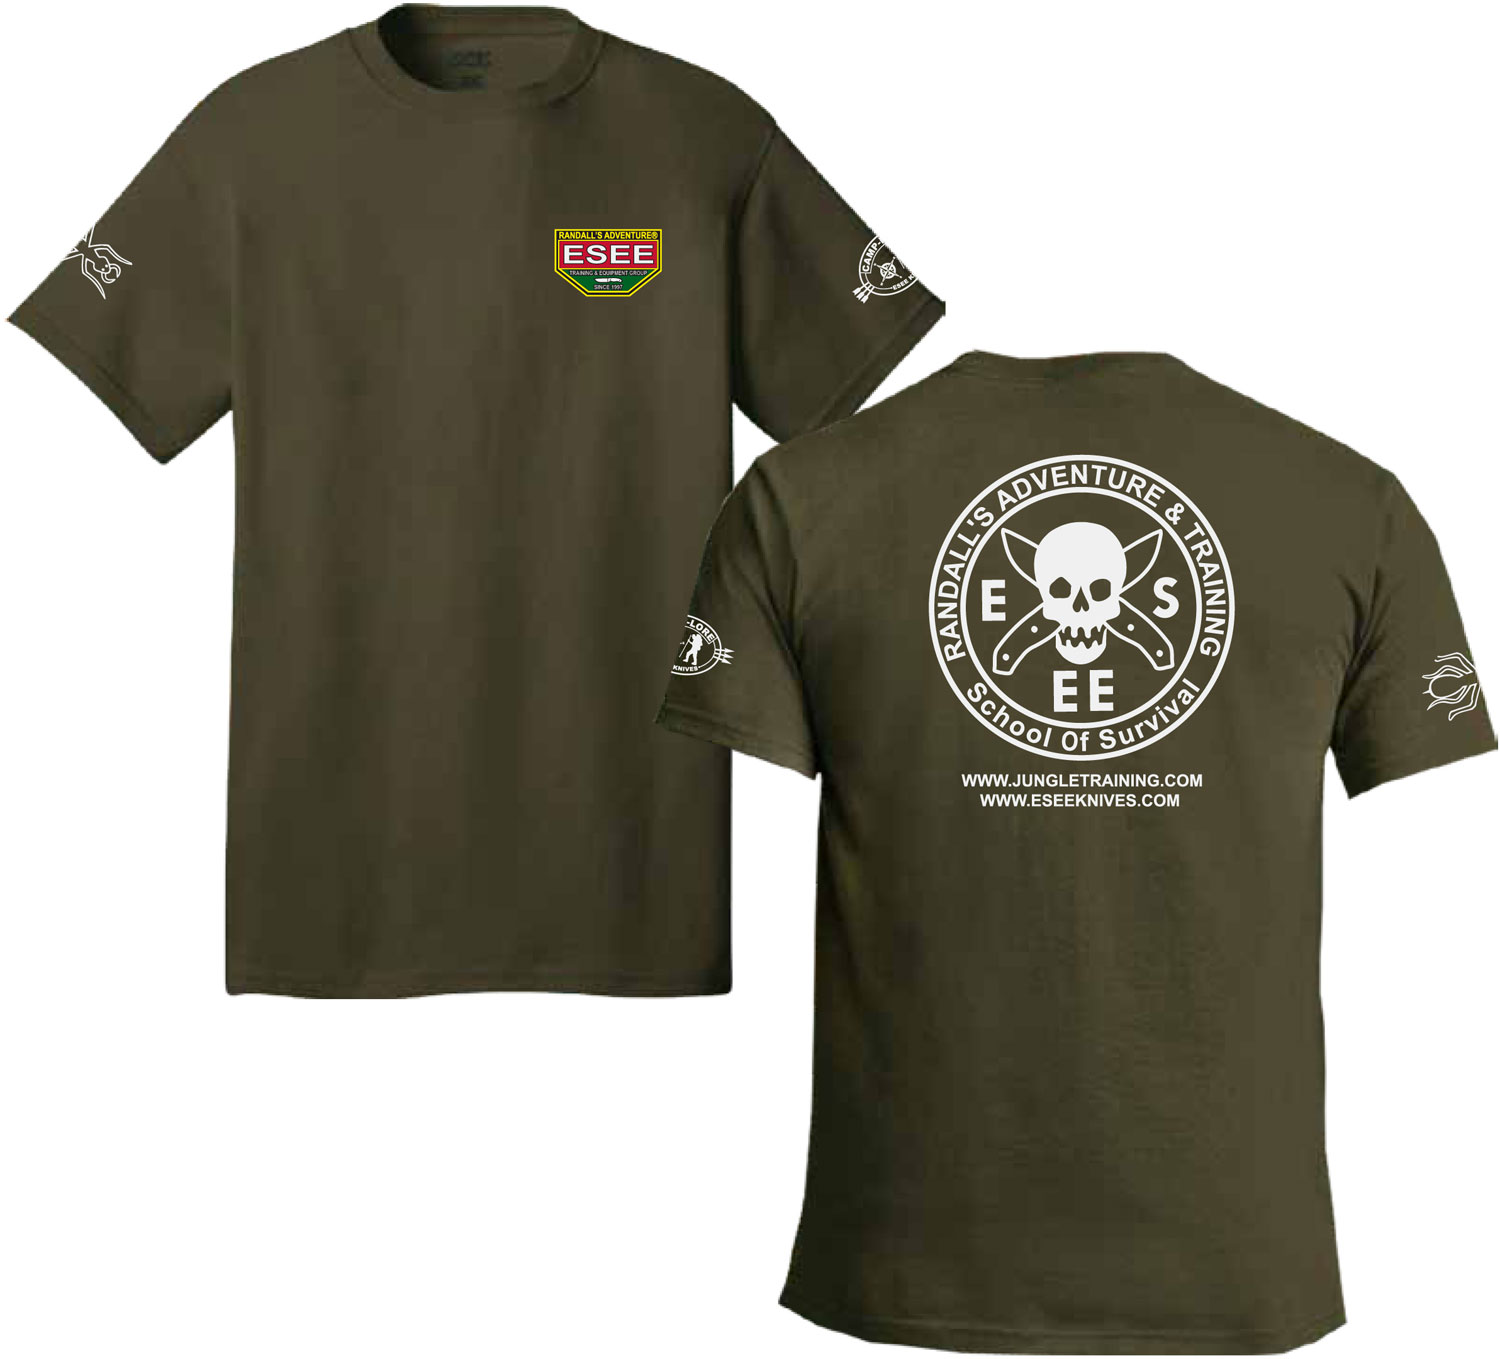 ESEE Knives Fatigue Green Training T-Shirt, Short Sleeve, 2XL